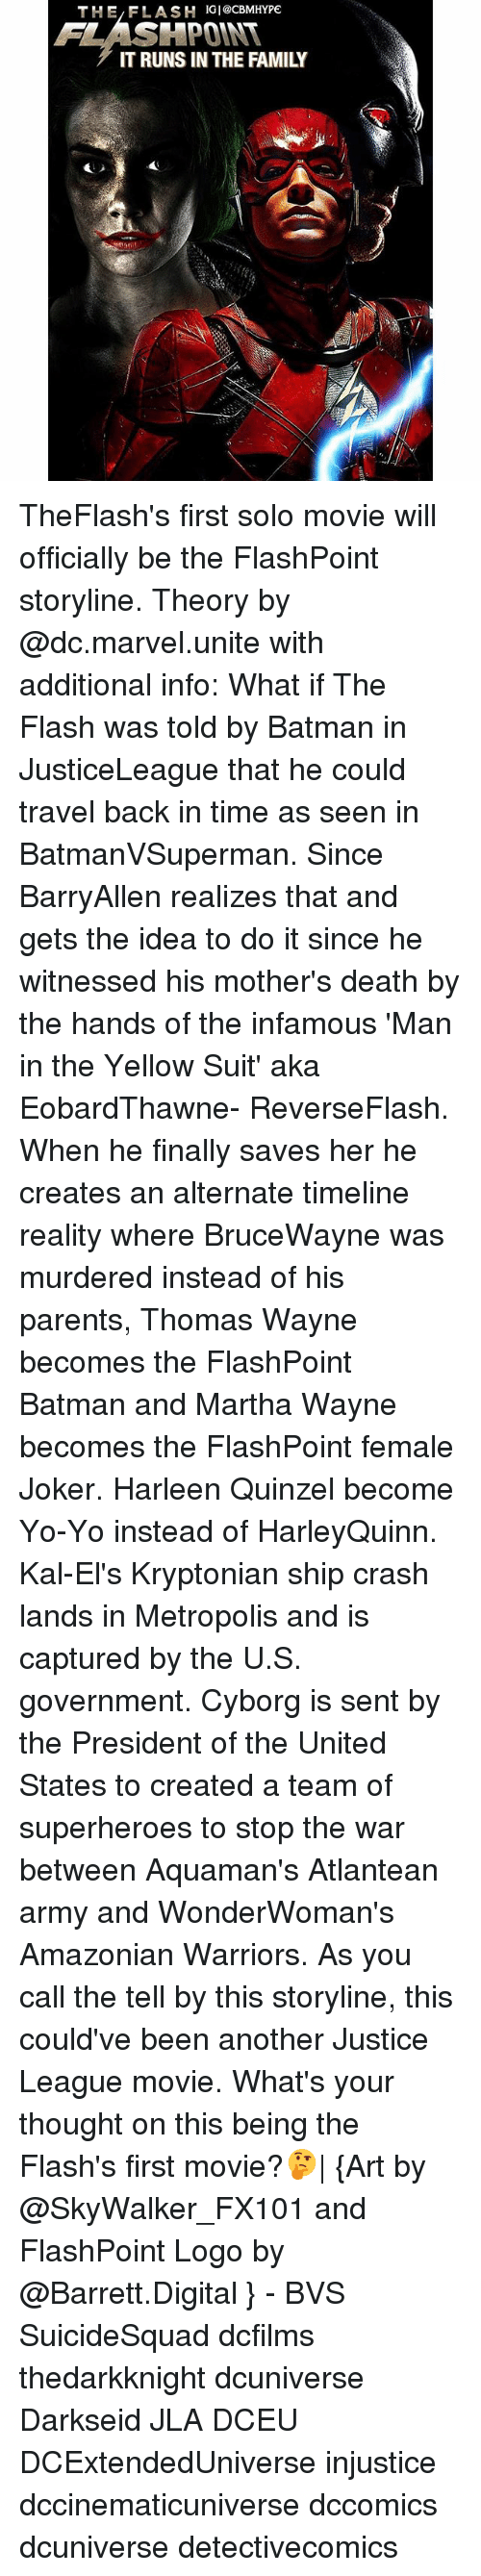 thomas wayne: THE,FLASH IGI@cBMHYPE  FLASHPOINT  IT RUNS IN THE FAMILY TheFlash's first solo movie will officially be the FlashPoint storyline. Theory by @dc.marvel.unite with additional info: What if The Flash was told by Batman in JusticeLeague that he could travel back in time as seen in BatmanVSuperman. Since BarryAllen realizes that and gets the idea to do it since he witnessed his mother's death by the hands of the infamous 'Man in the Yellow Suit' aka EobardThawne- ReverseFlash. When he finally saves her he creates an alternate timeline reality where BruceWayne was murdered instead of his parents, Thomas Wayne becomes the FlashPoint Batman and Martha Wayne becomes the FlashPoint female Joker. Harleen Quinzel become Yo-Yo instead of HarleyQuinn. Kal-El's Kryptonian ship crash lands in Metropolis and is captured by the U.S. government. Cyborg is sent by the President of the United States to created a team of superheroes to stop the war between Aquaman's Atlantean army and WonderWoman's Amazonian Warriors. As you call the tell by this storyline, this could've been another Justice League movie. What's your thought on this being the Flash's first movie?🤔| {Art by @SkyWalker_FX101 and FlashPoint Logo by @Barrett.Digital } - BVS SuicideSquad dcfilms thedarkknight dcuniverse Darkseid JLA DCEU DCExtendedUniverse injustice dccinematicuniverse dccomics dcuniverse detectivecomics